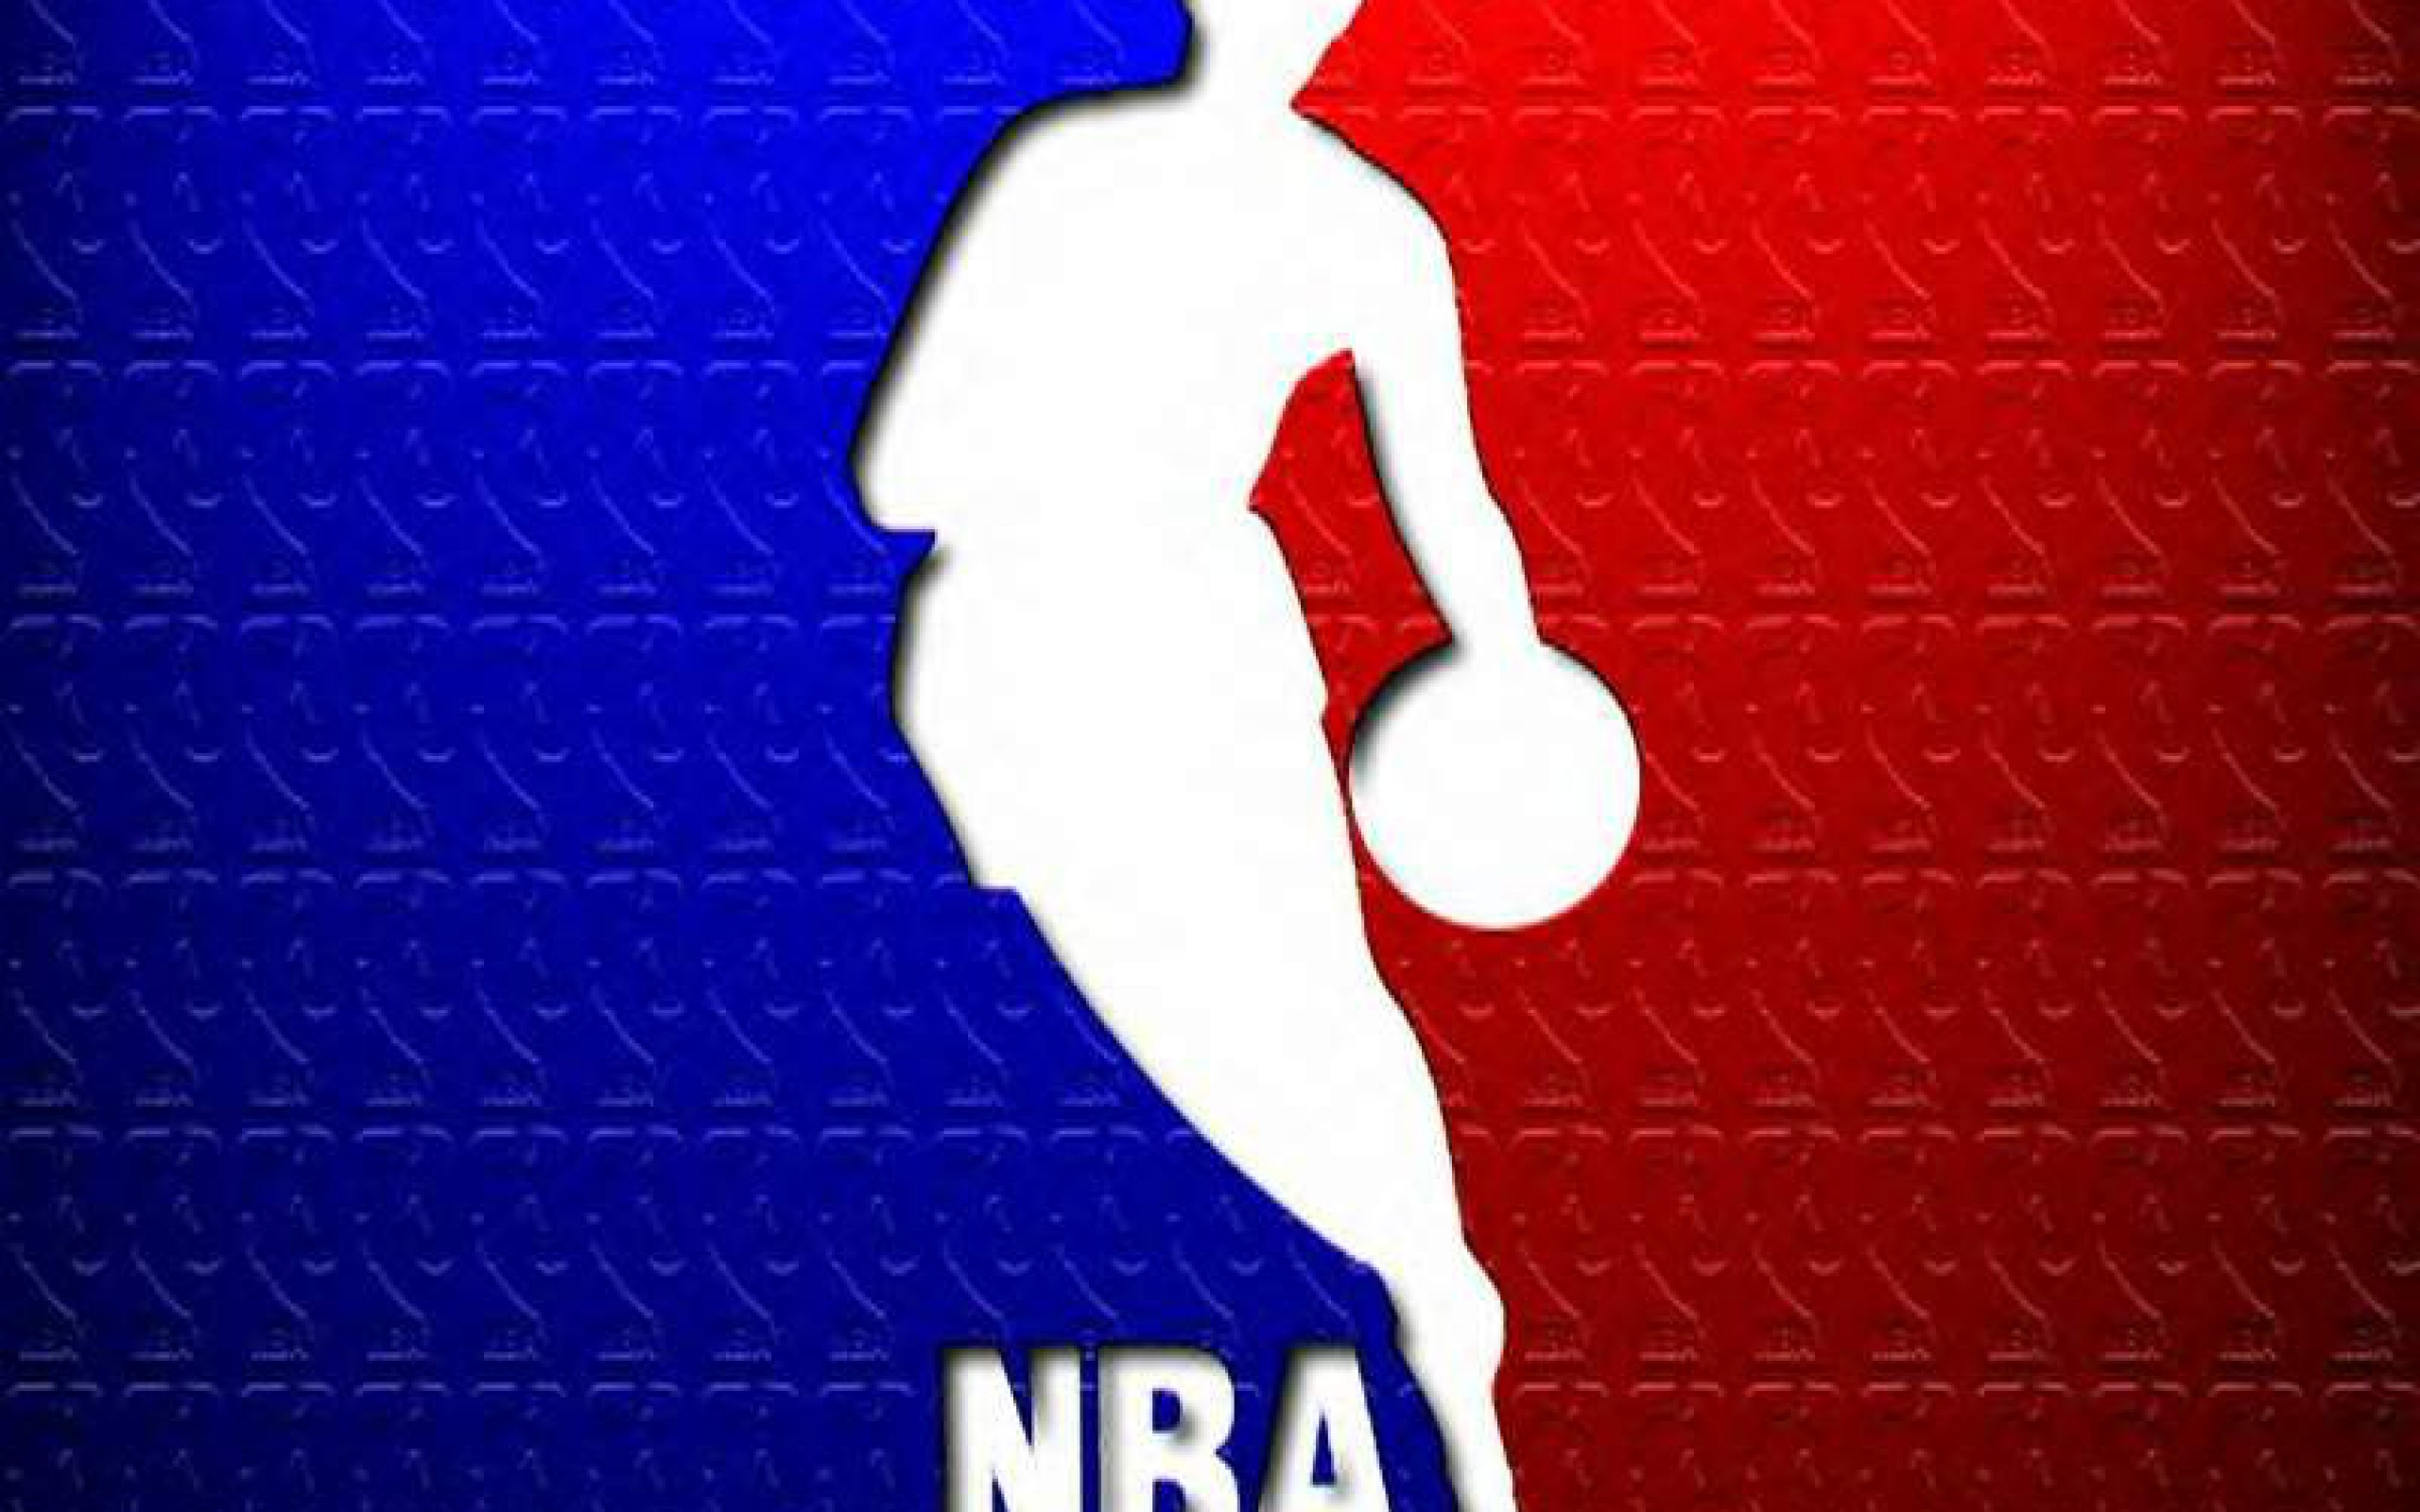 basketball wallpapers basketball wallpapers 2015 basketball wallpapers 2560x1600